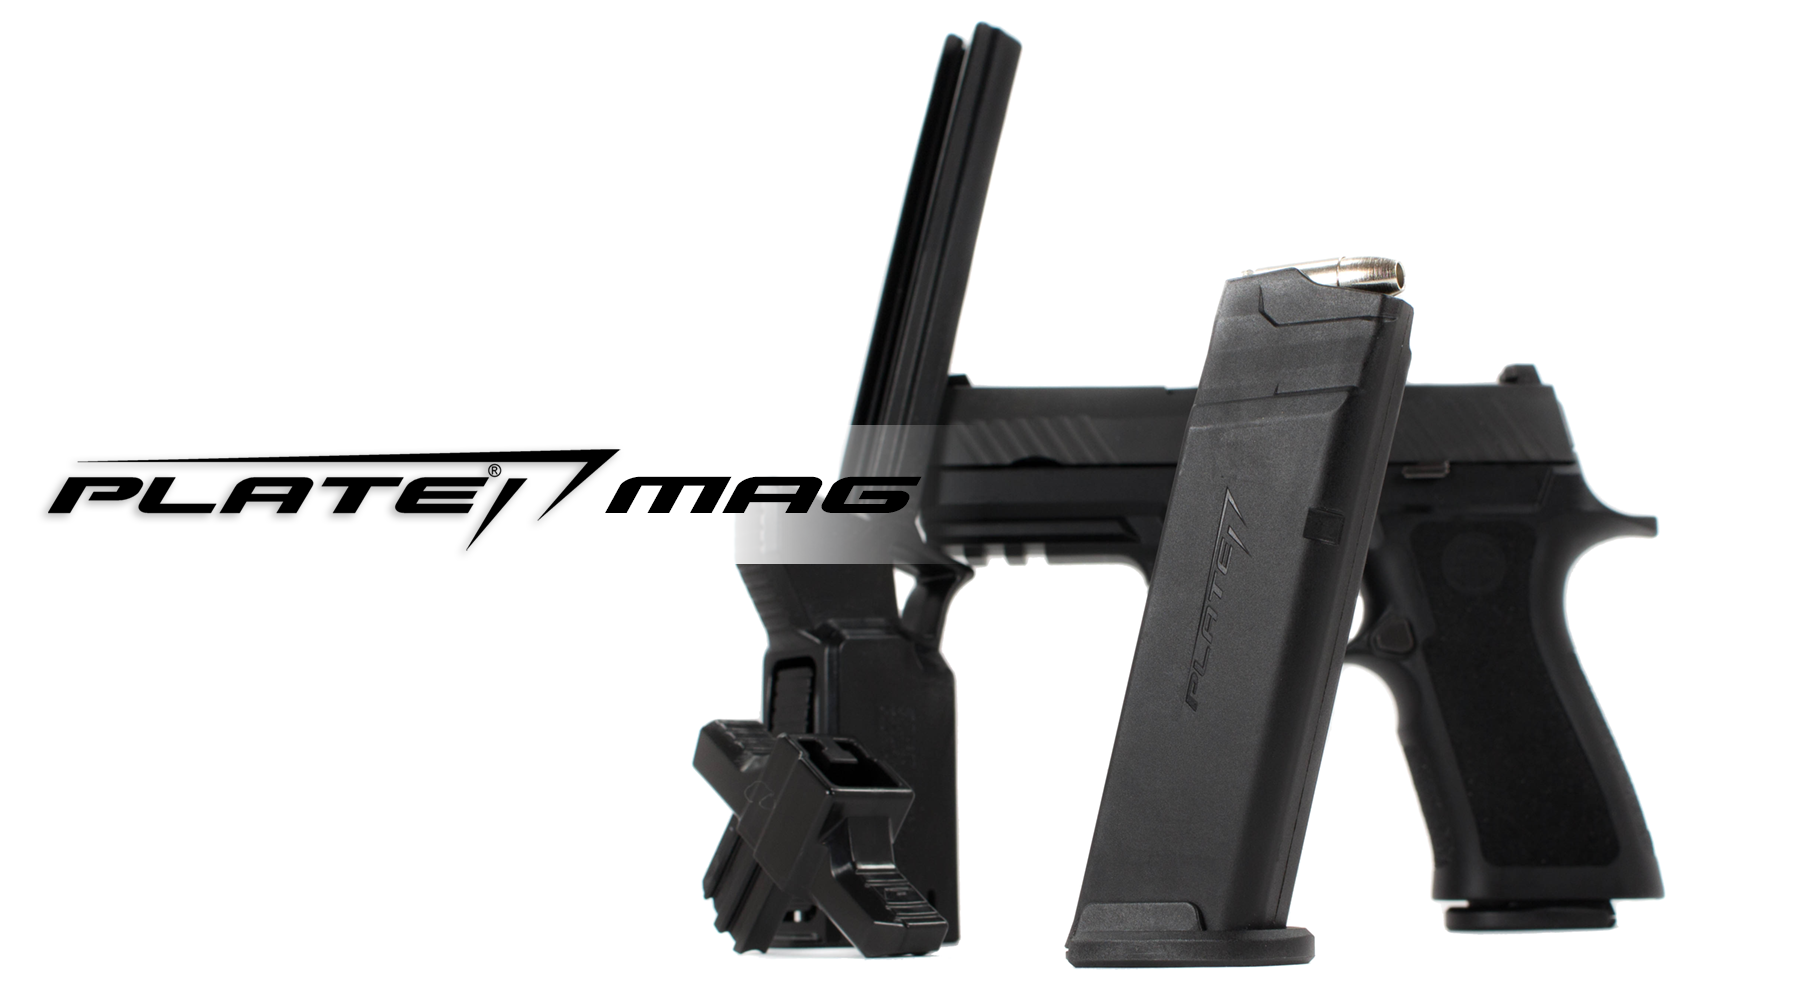 PLATE Announces Development of Polymer Magazines for P320 and M17 Pistols